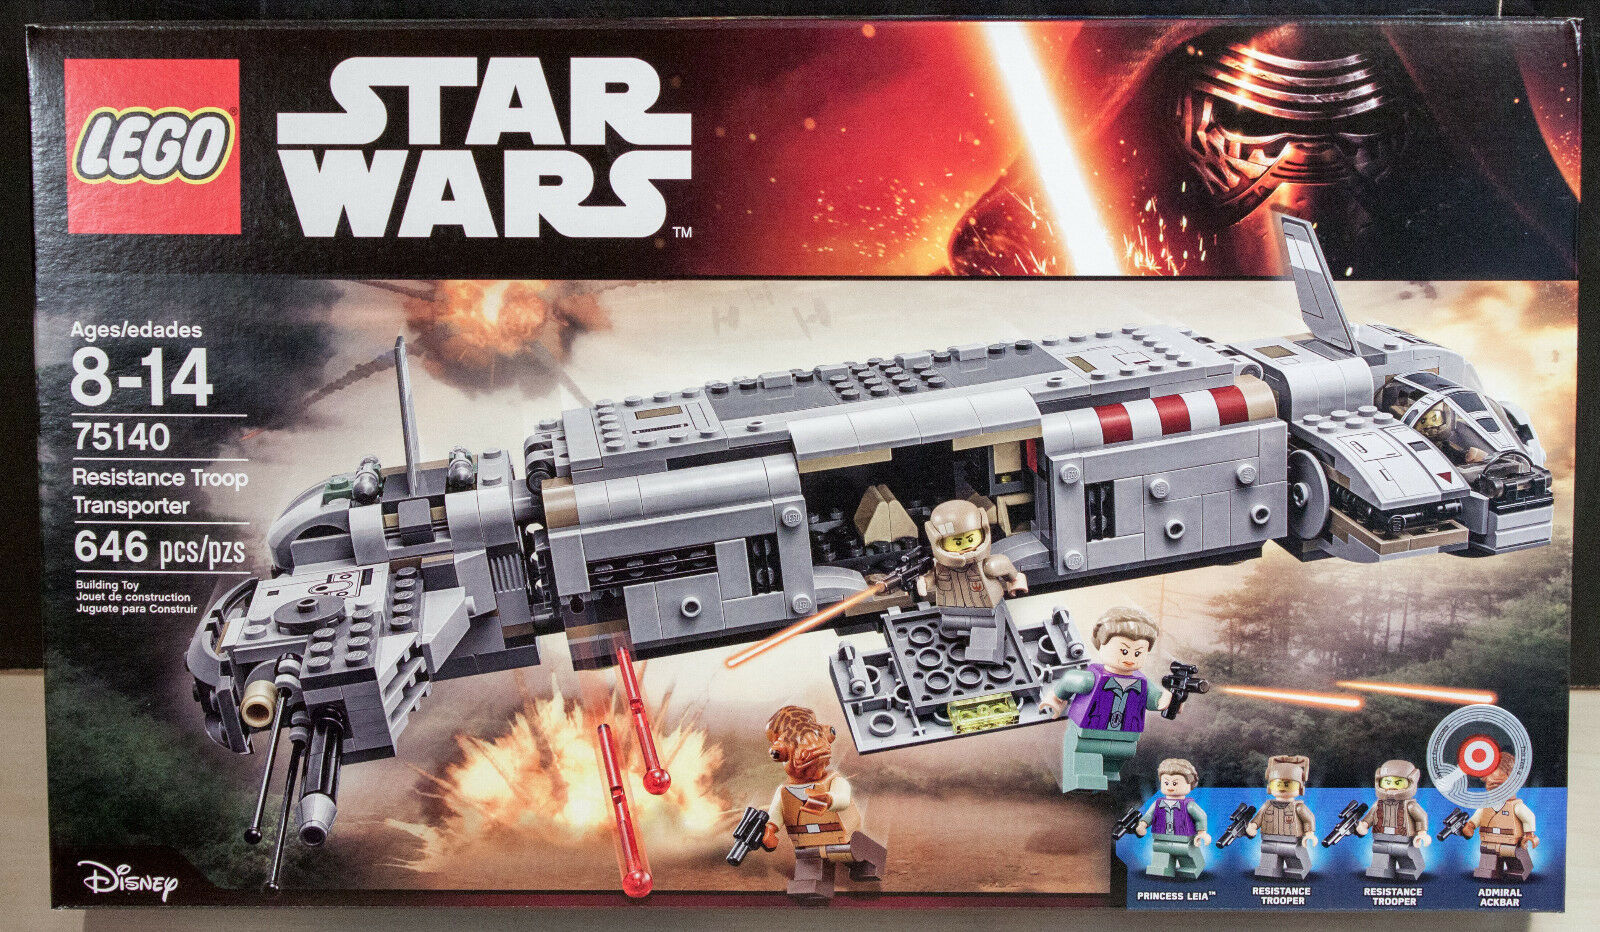 LEGO Star Wars Resistance Troop Transporter  75140  Nuovo Sealed Box